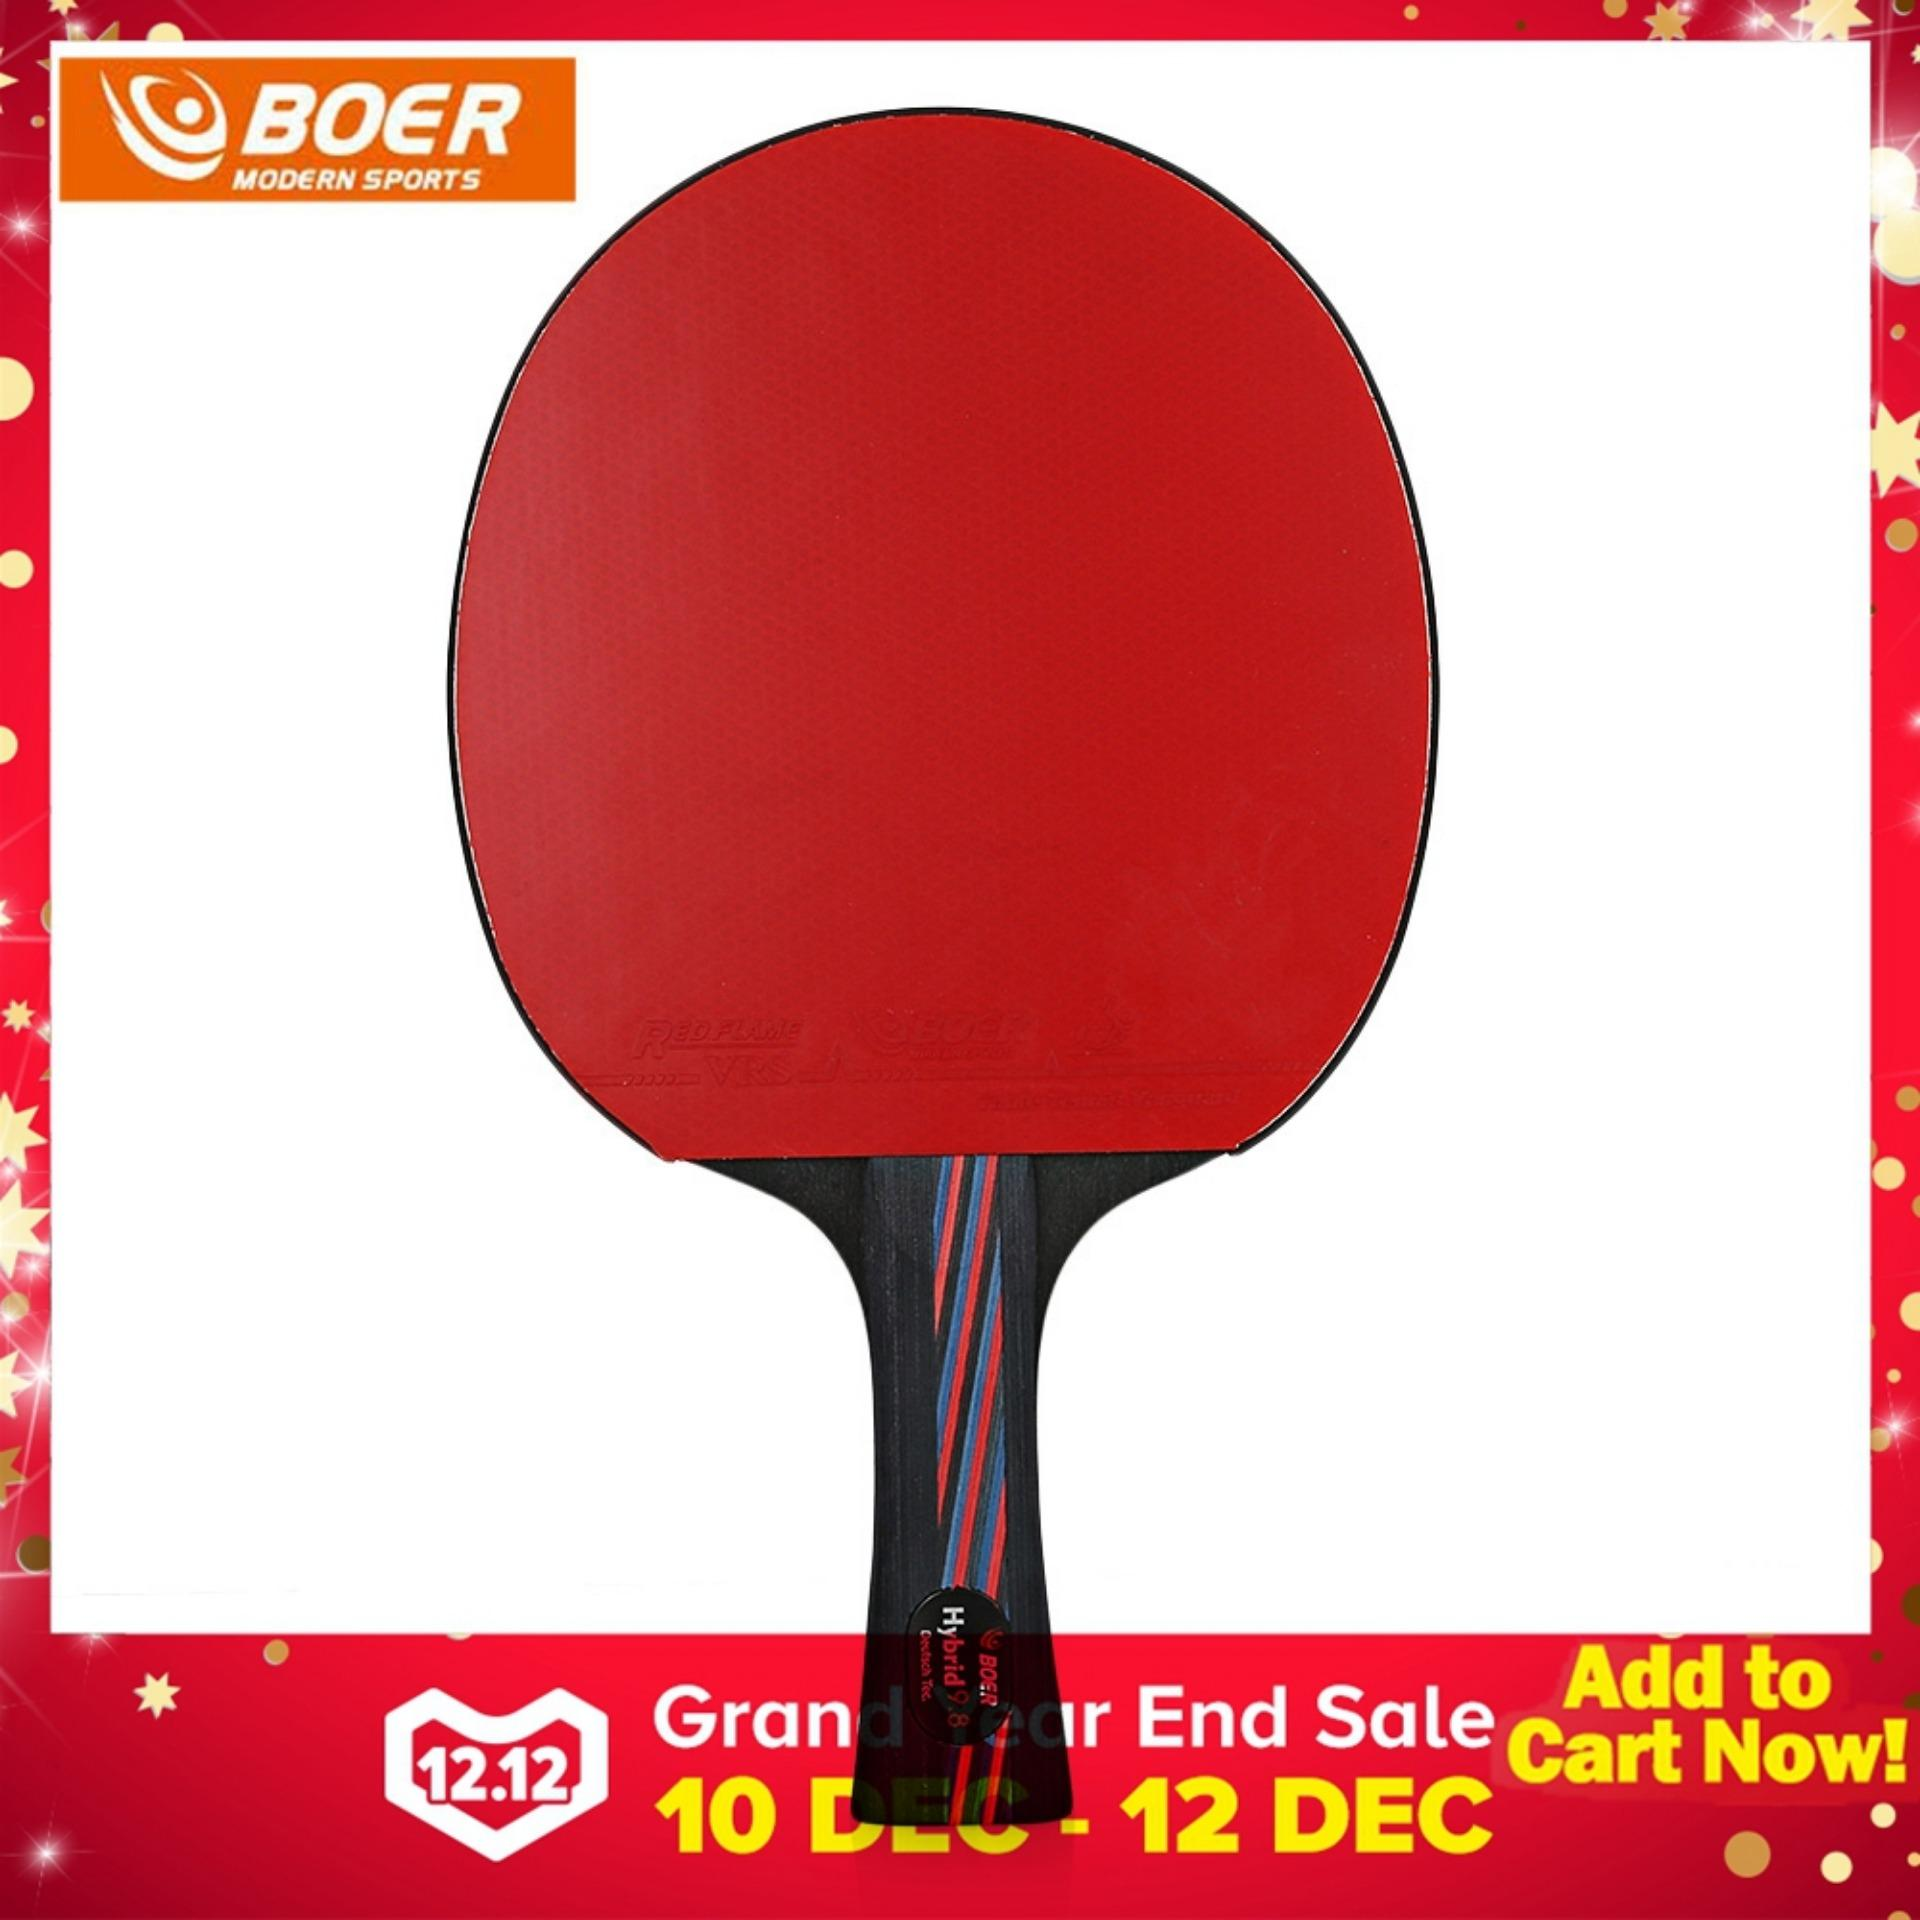 Boer Shake-Hand Grip Outdoor Table Tennis Lightweight Ping Pong Racket Paddle With Storing Bag - Intl By Houselife.